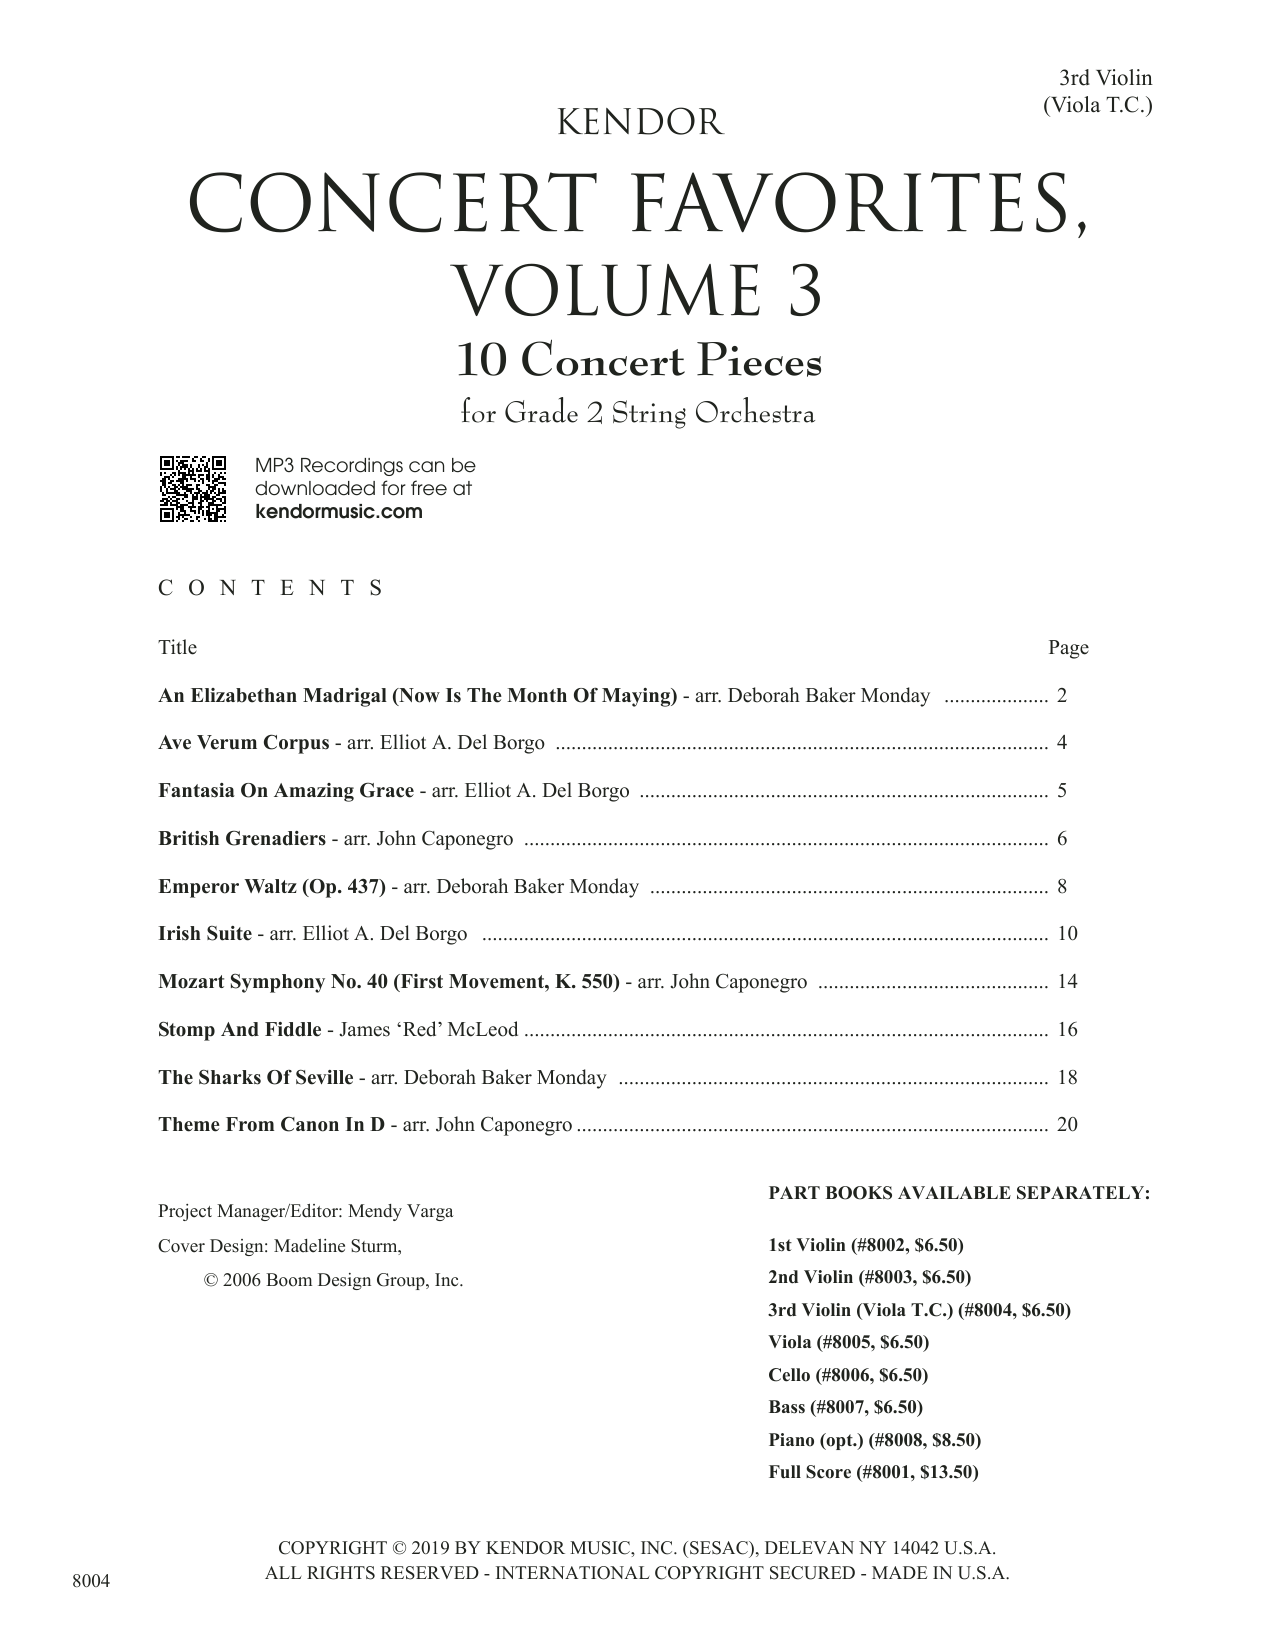 Kendor Concert Favorites, Volume 3 - 3rd Violin (Viola T.C.) Sheet Music